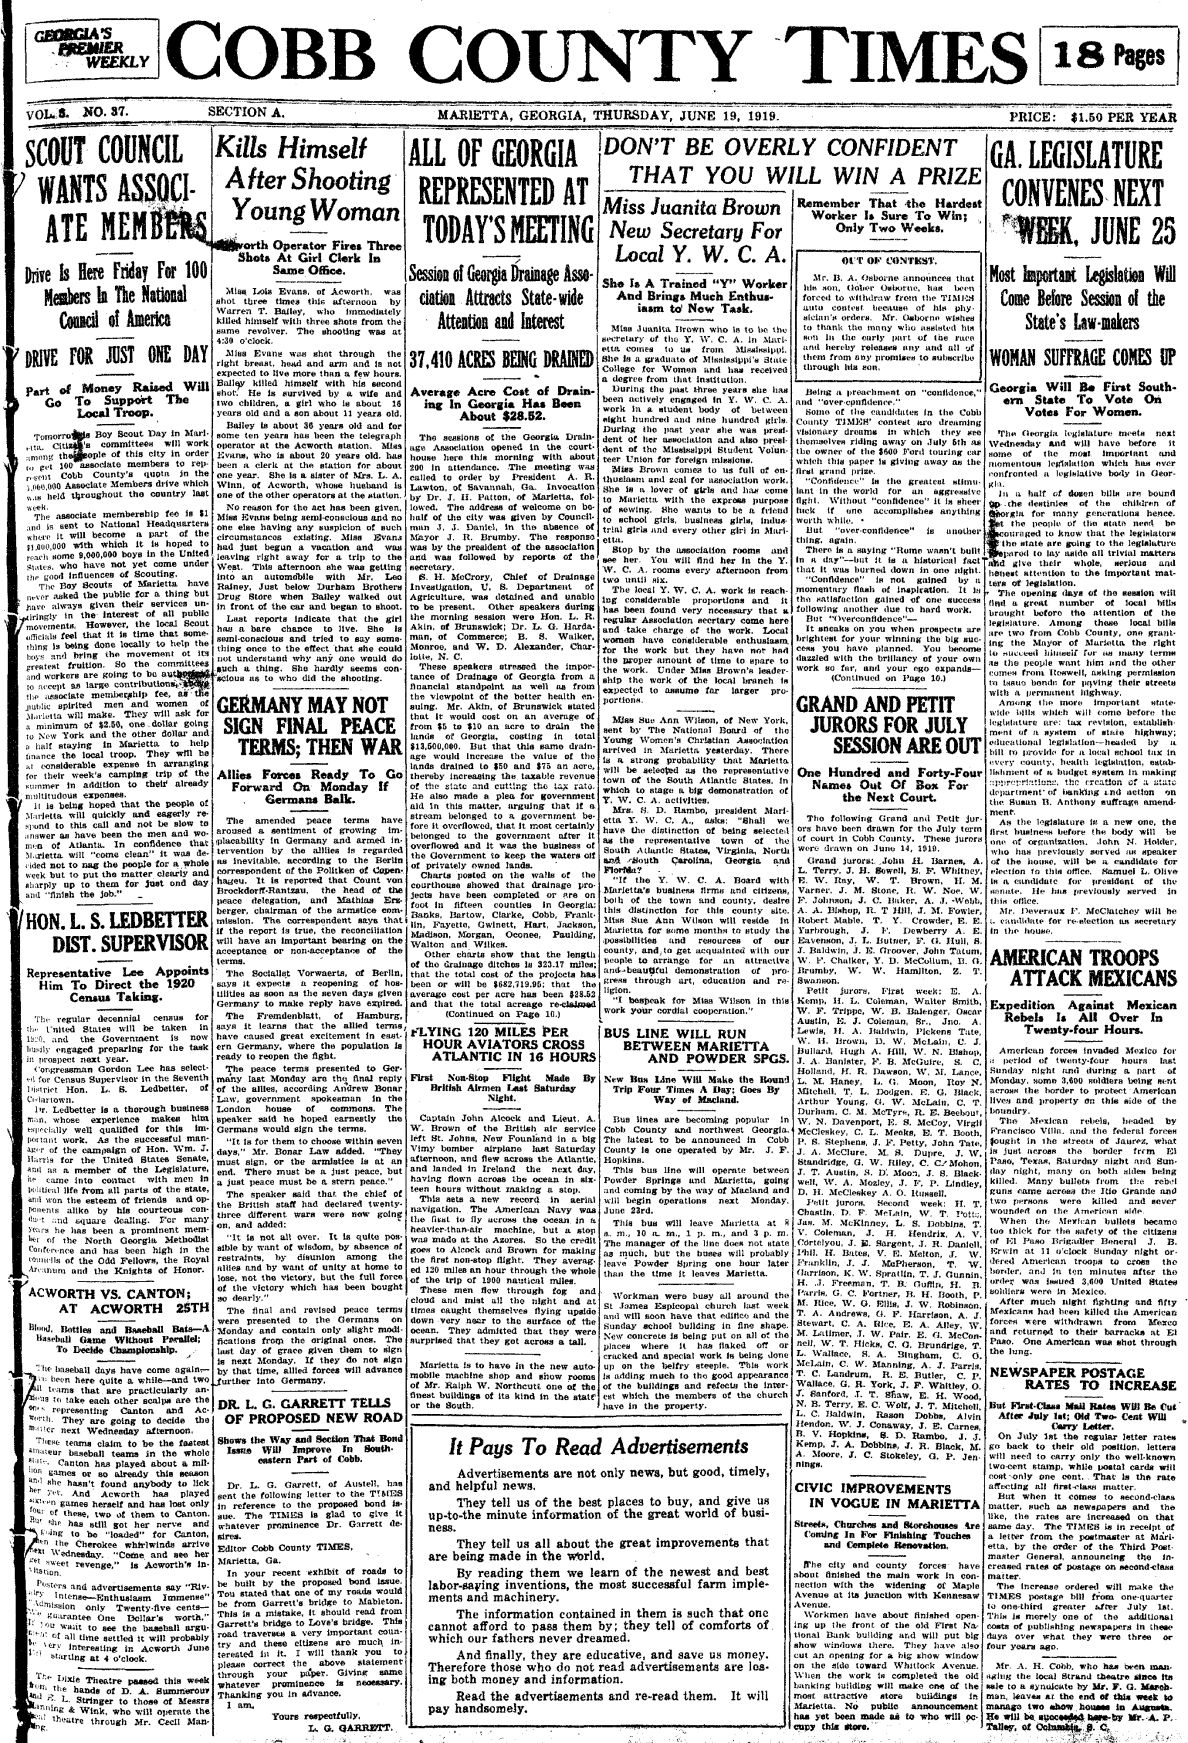 062319_MDJ_Time_Capsule_TIMES_06191919_Front